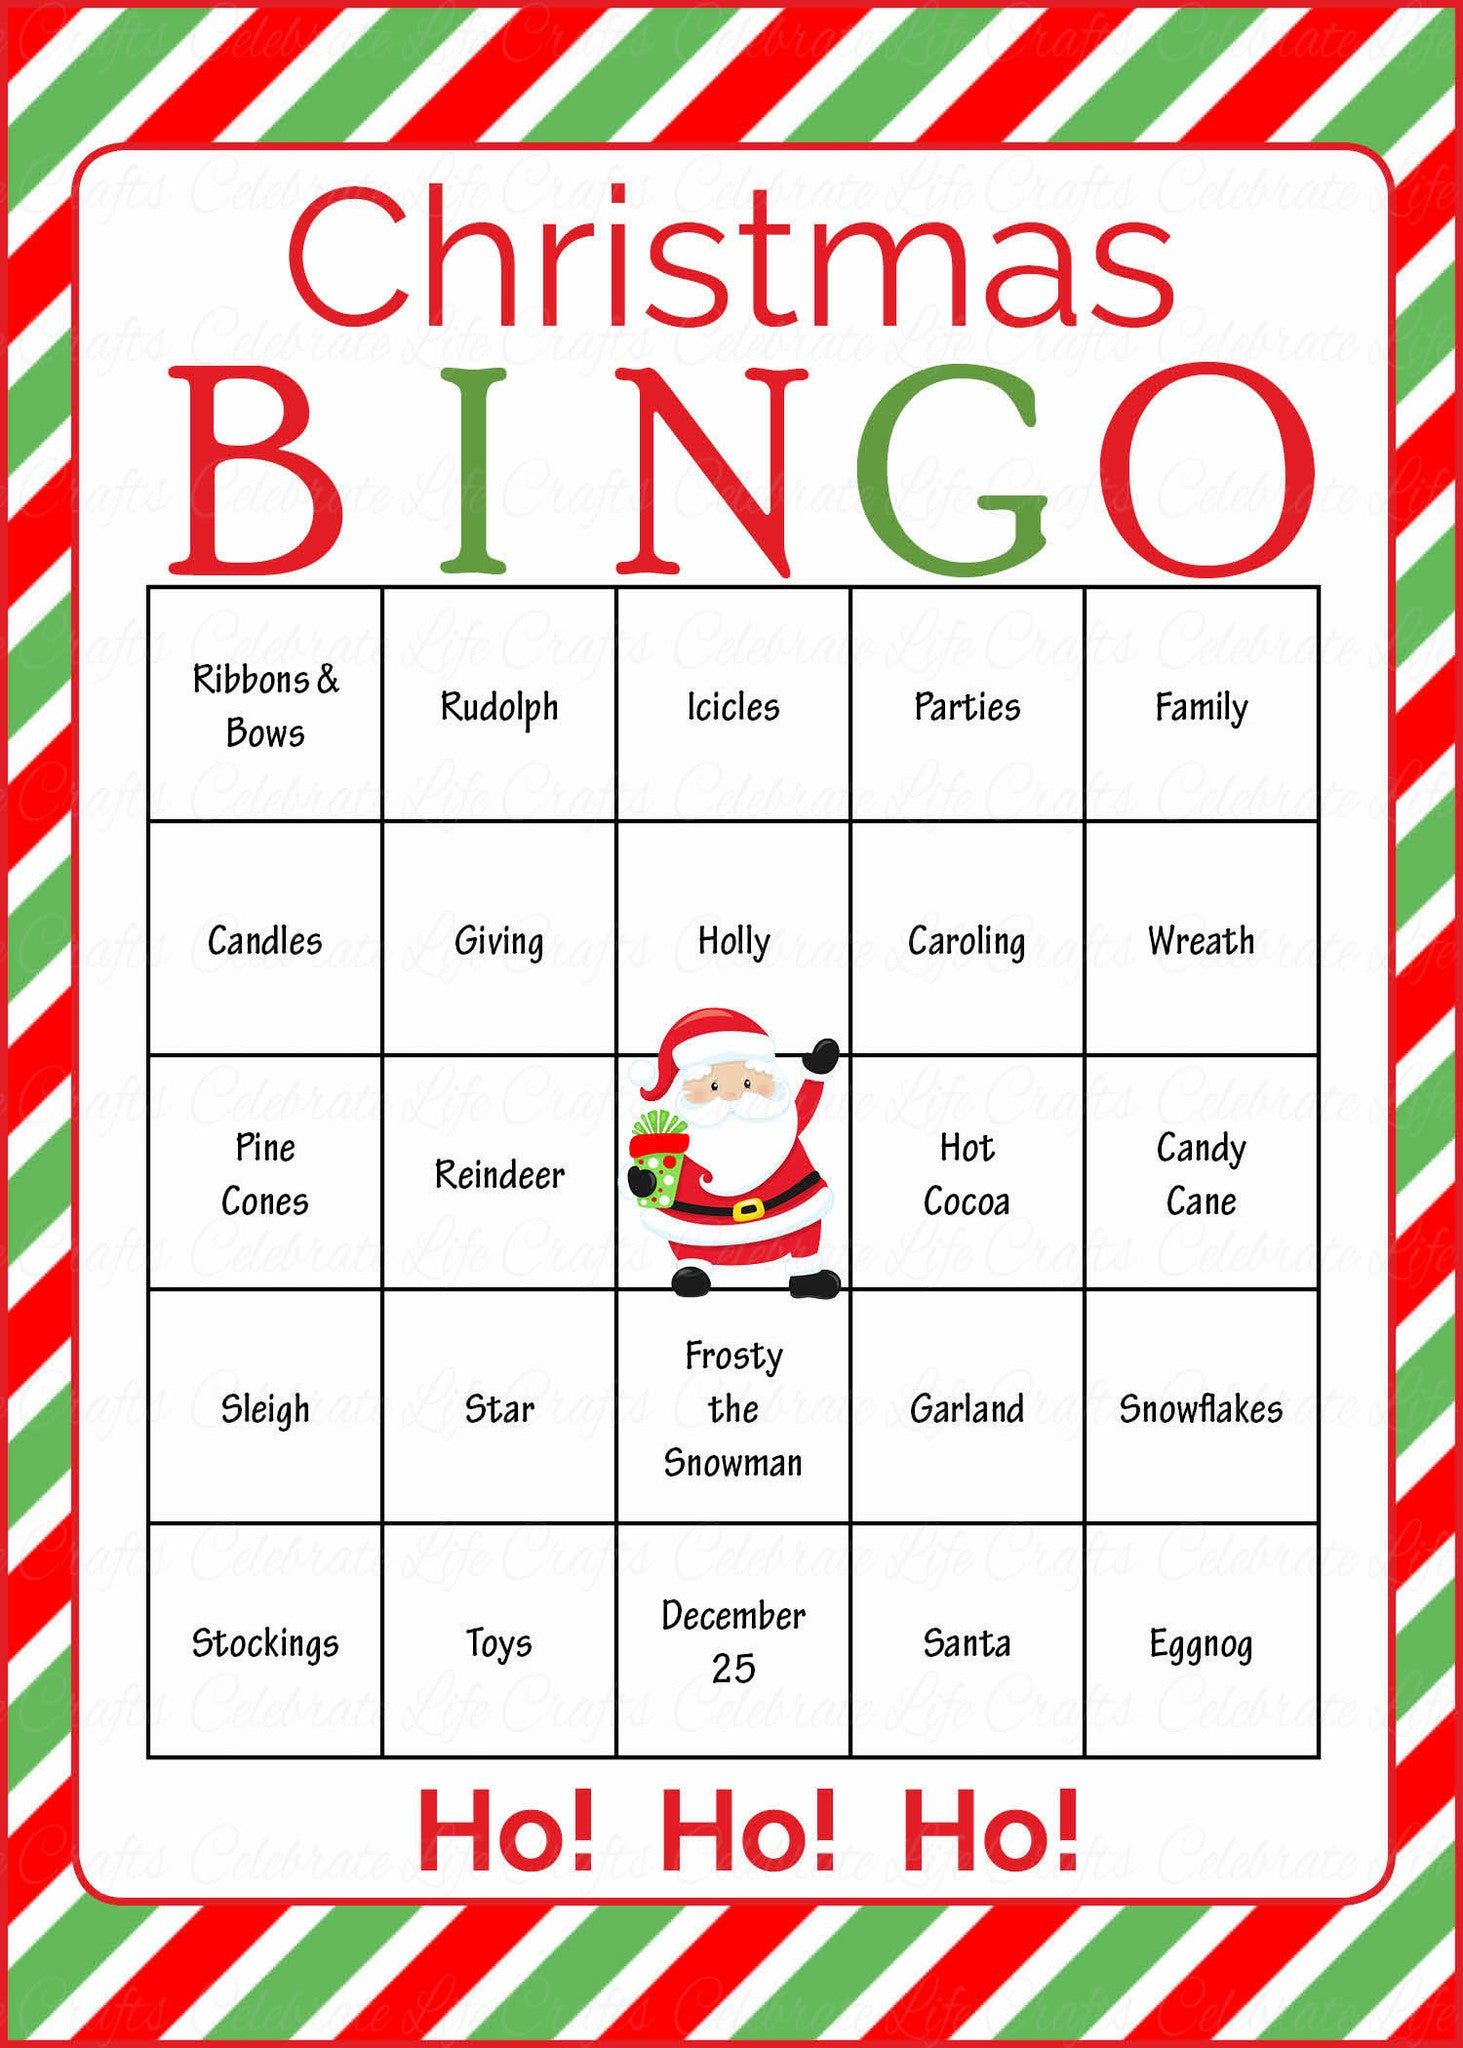 Christmas Party Game Ideas Part - 41: Christmas Bingo Cards - Printable Download - Prefilled - Christmas Party  Games - Green And Red Stripes.